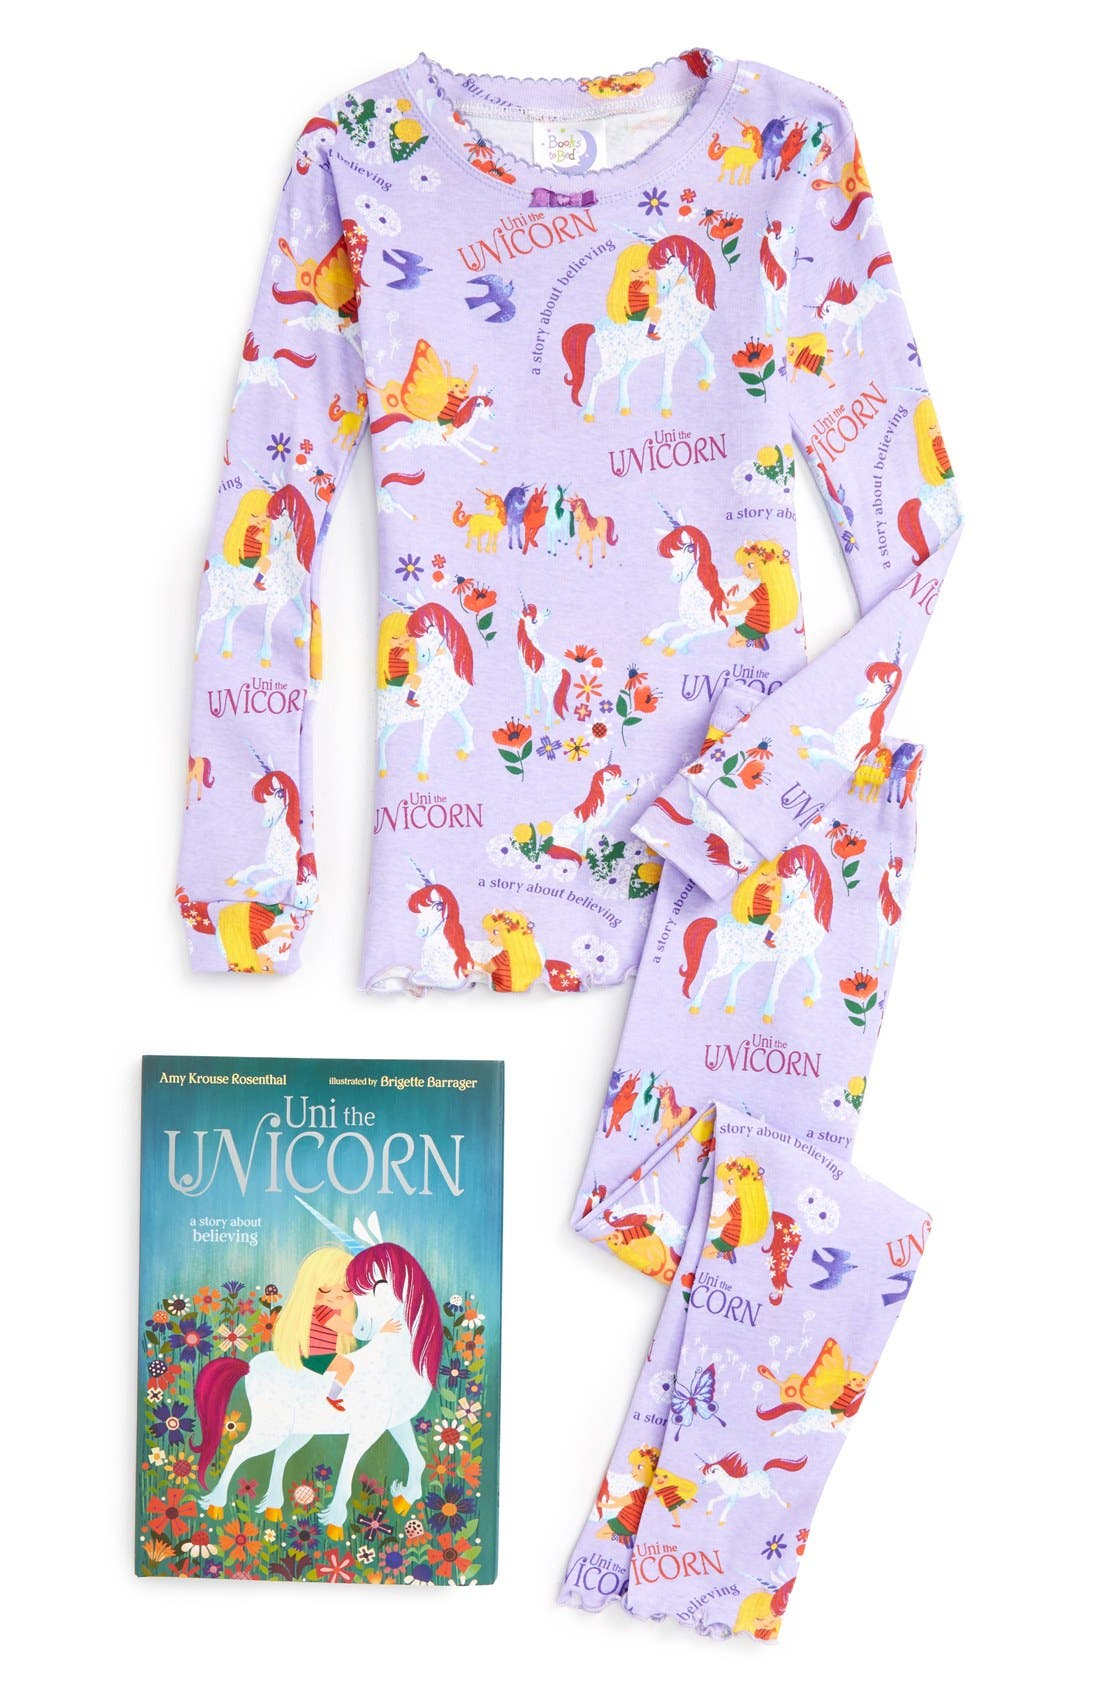 Alternate Image 1 Selected - Books to Bed Uni the Unicorn Fitted Two-Piece Pajamas & Book Set (Toddler Girls, Little Girls & Big Girls)